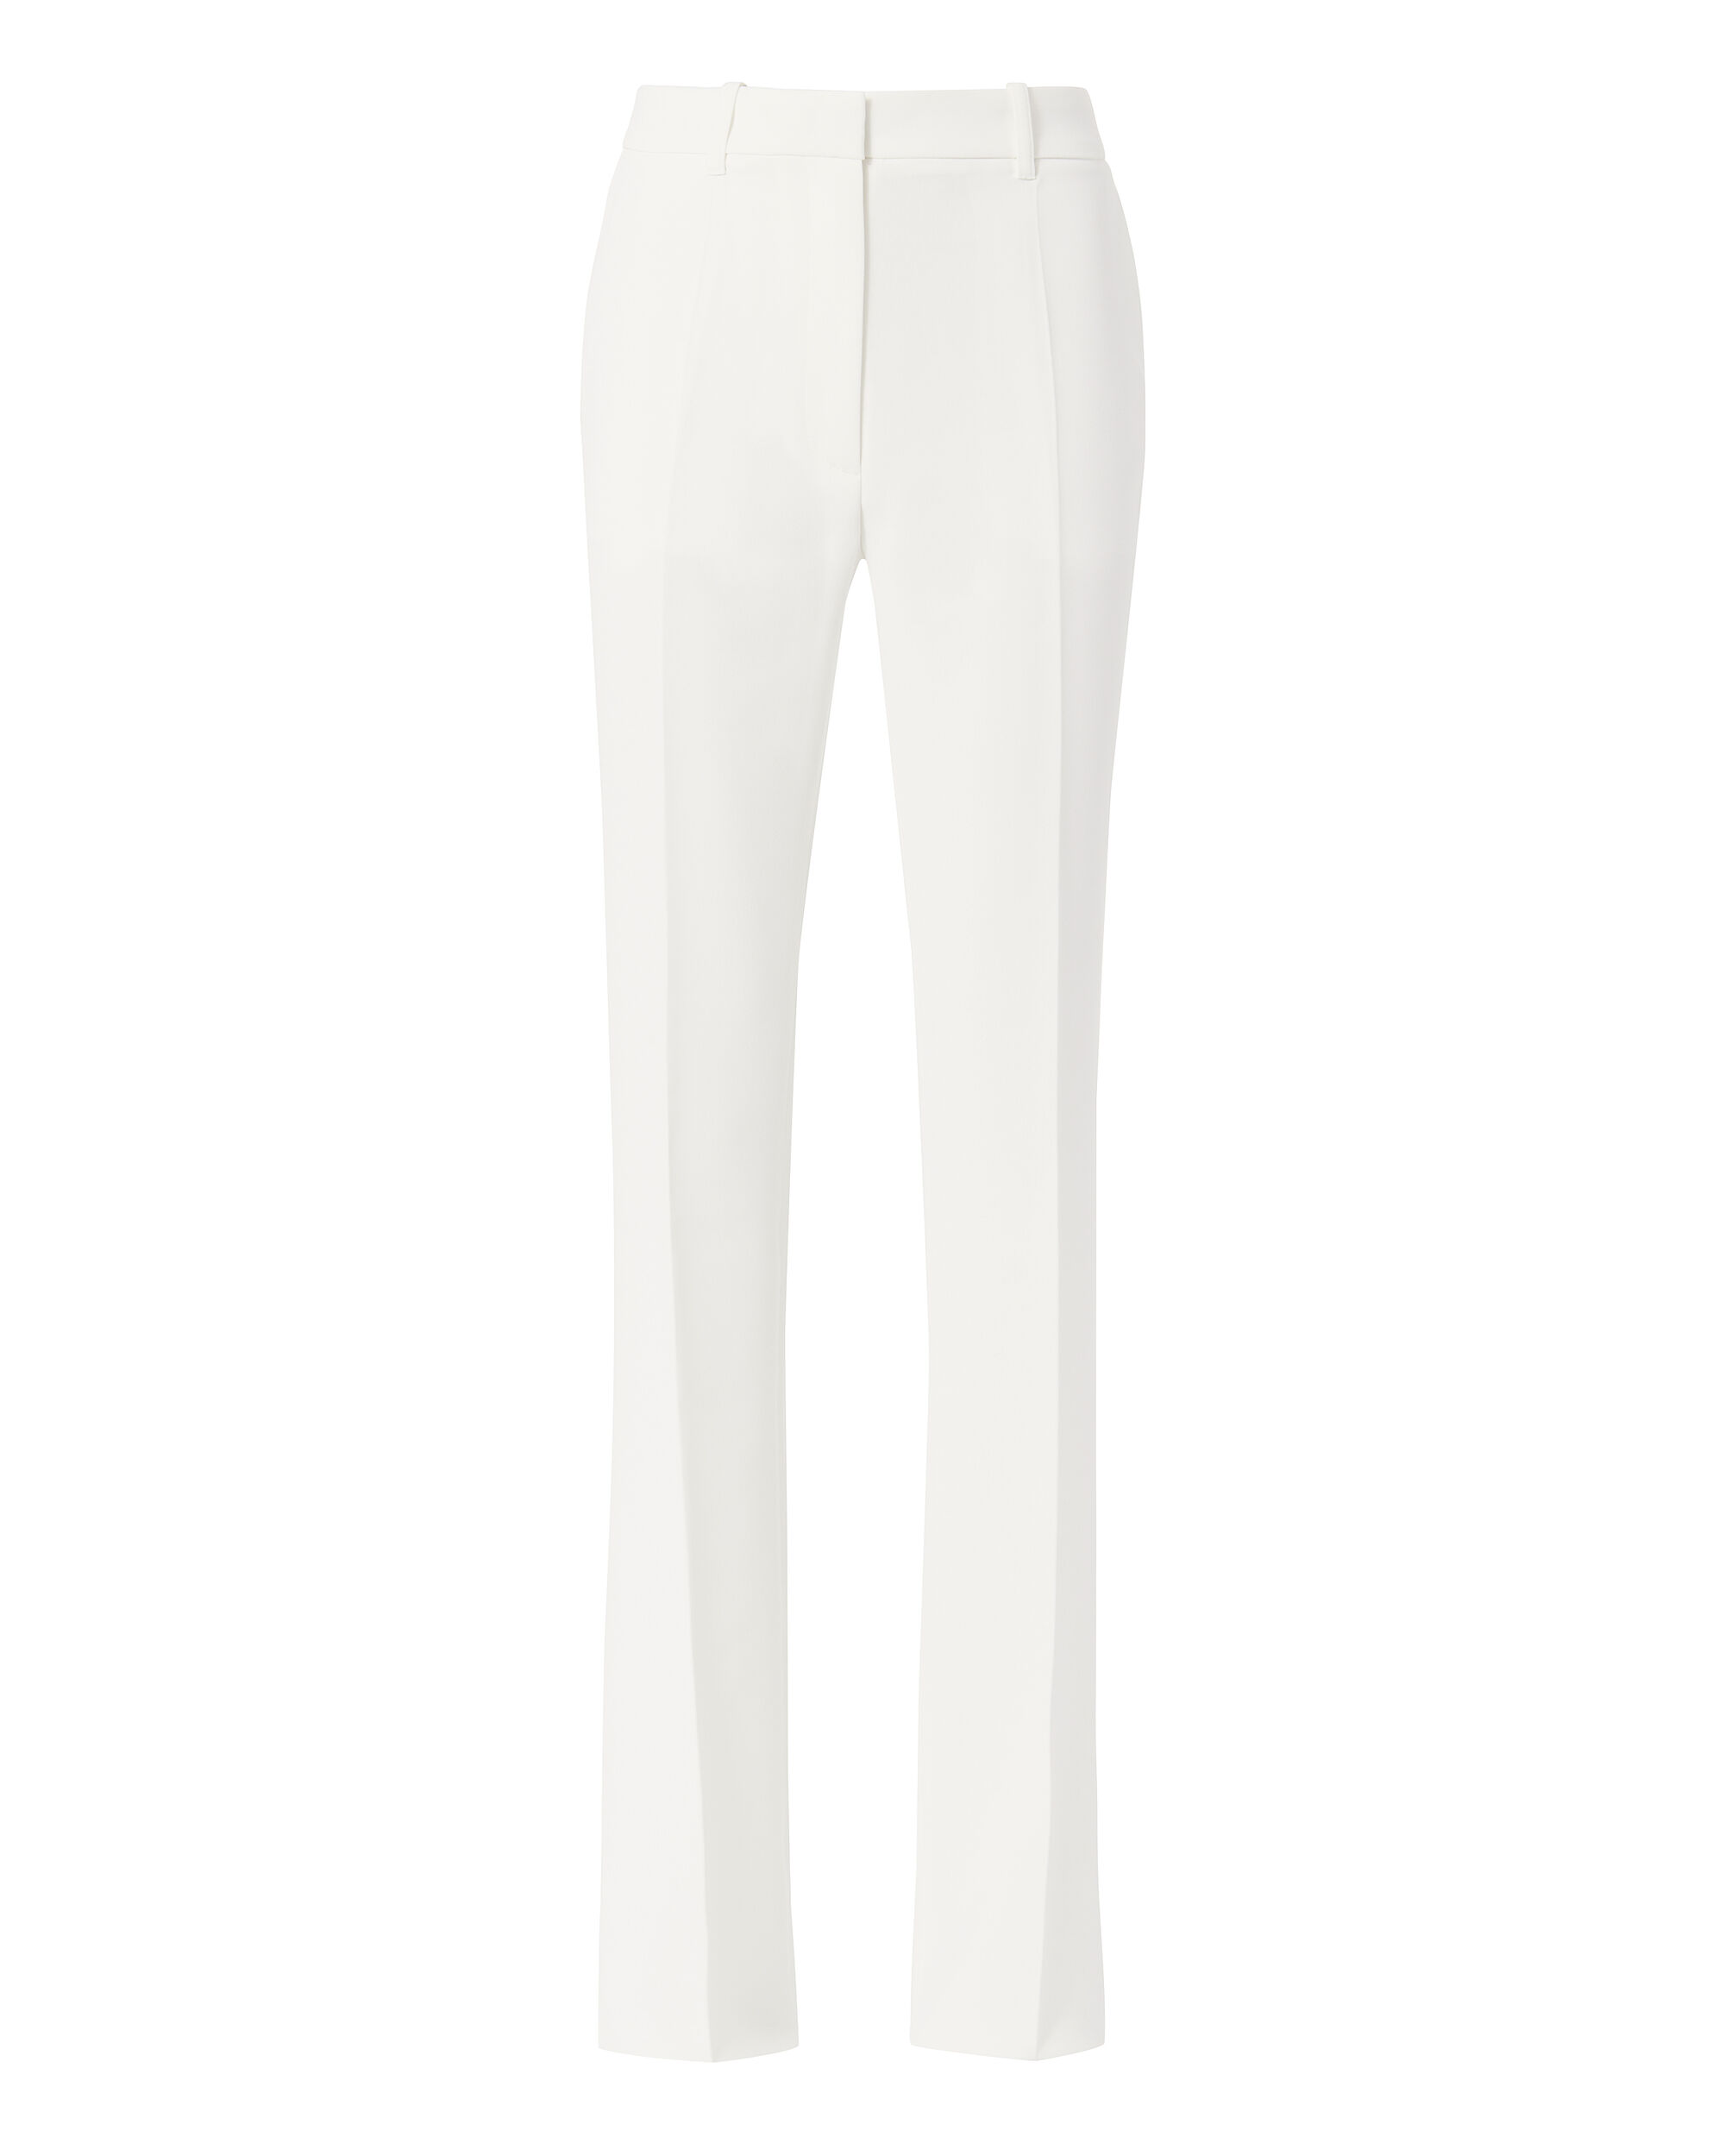 White High-Rise Flare Pants, WHITE, hi-res